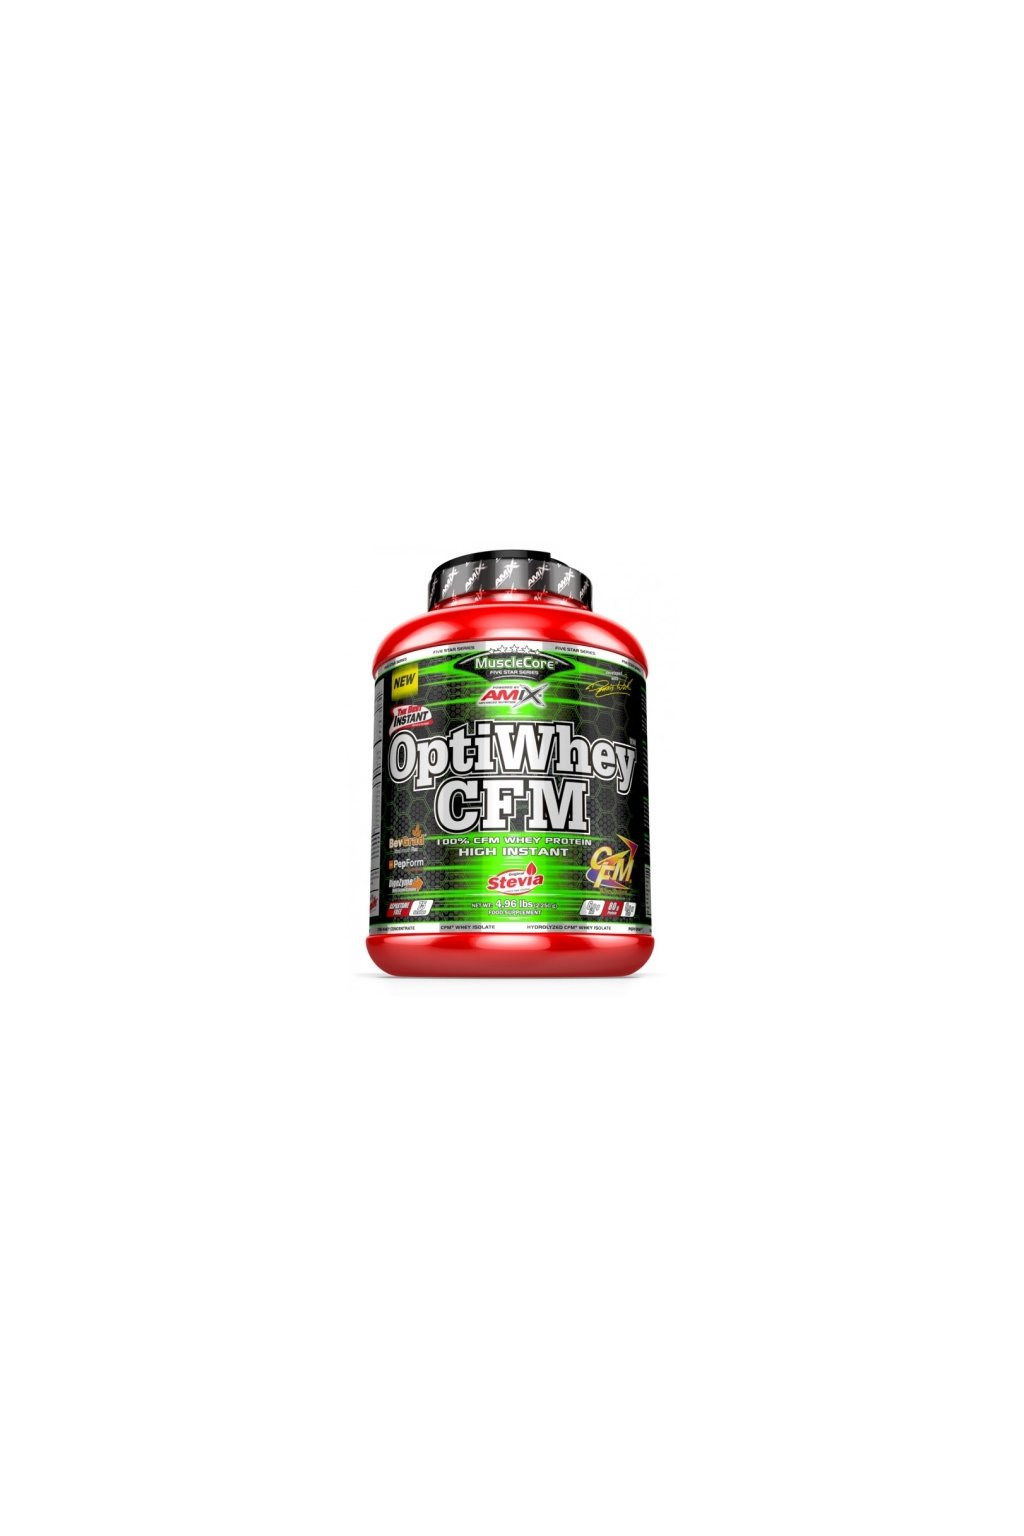 amix musclecore optiwhey cfm instant protein 2250g